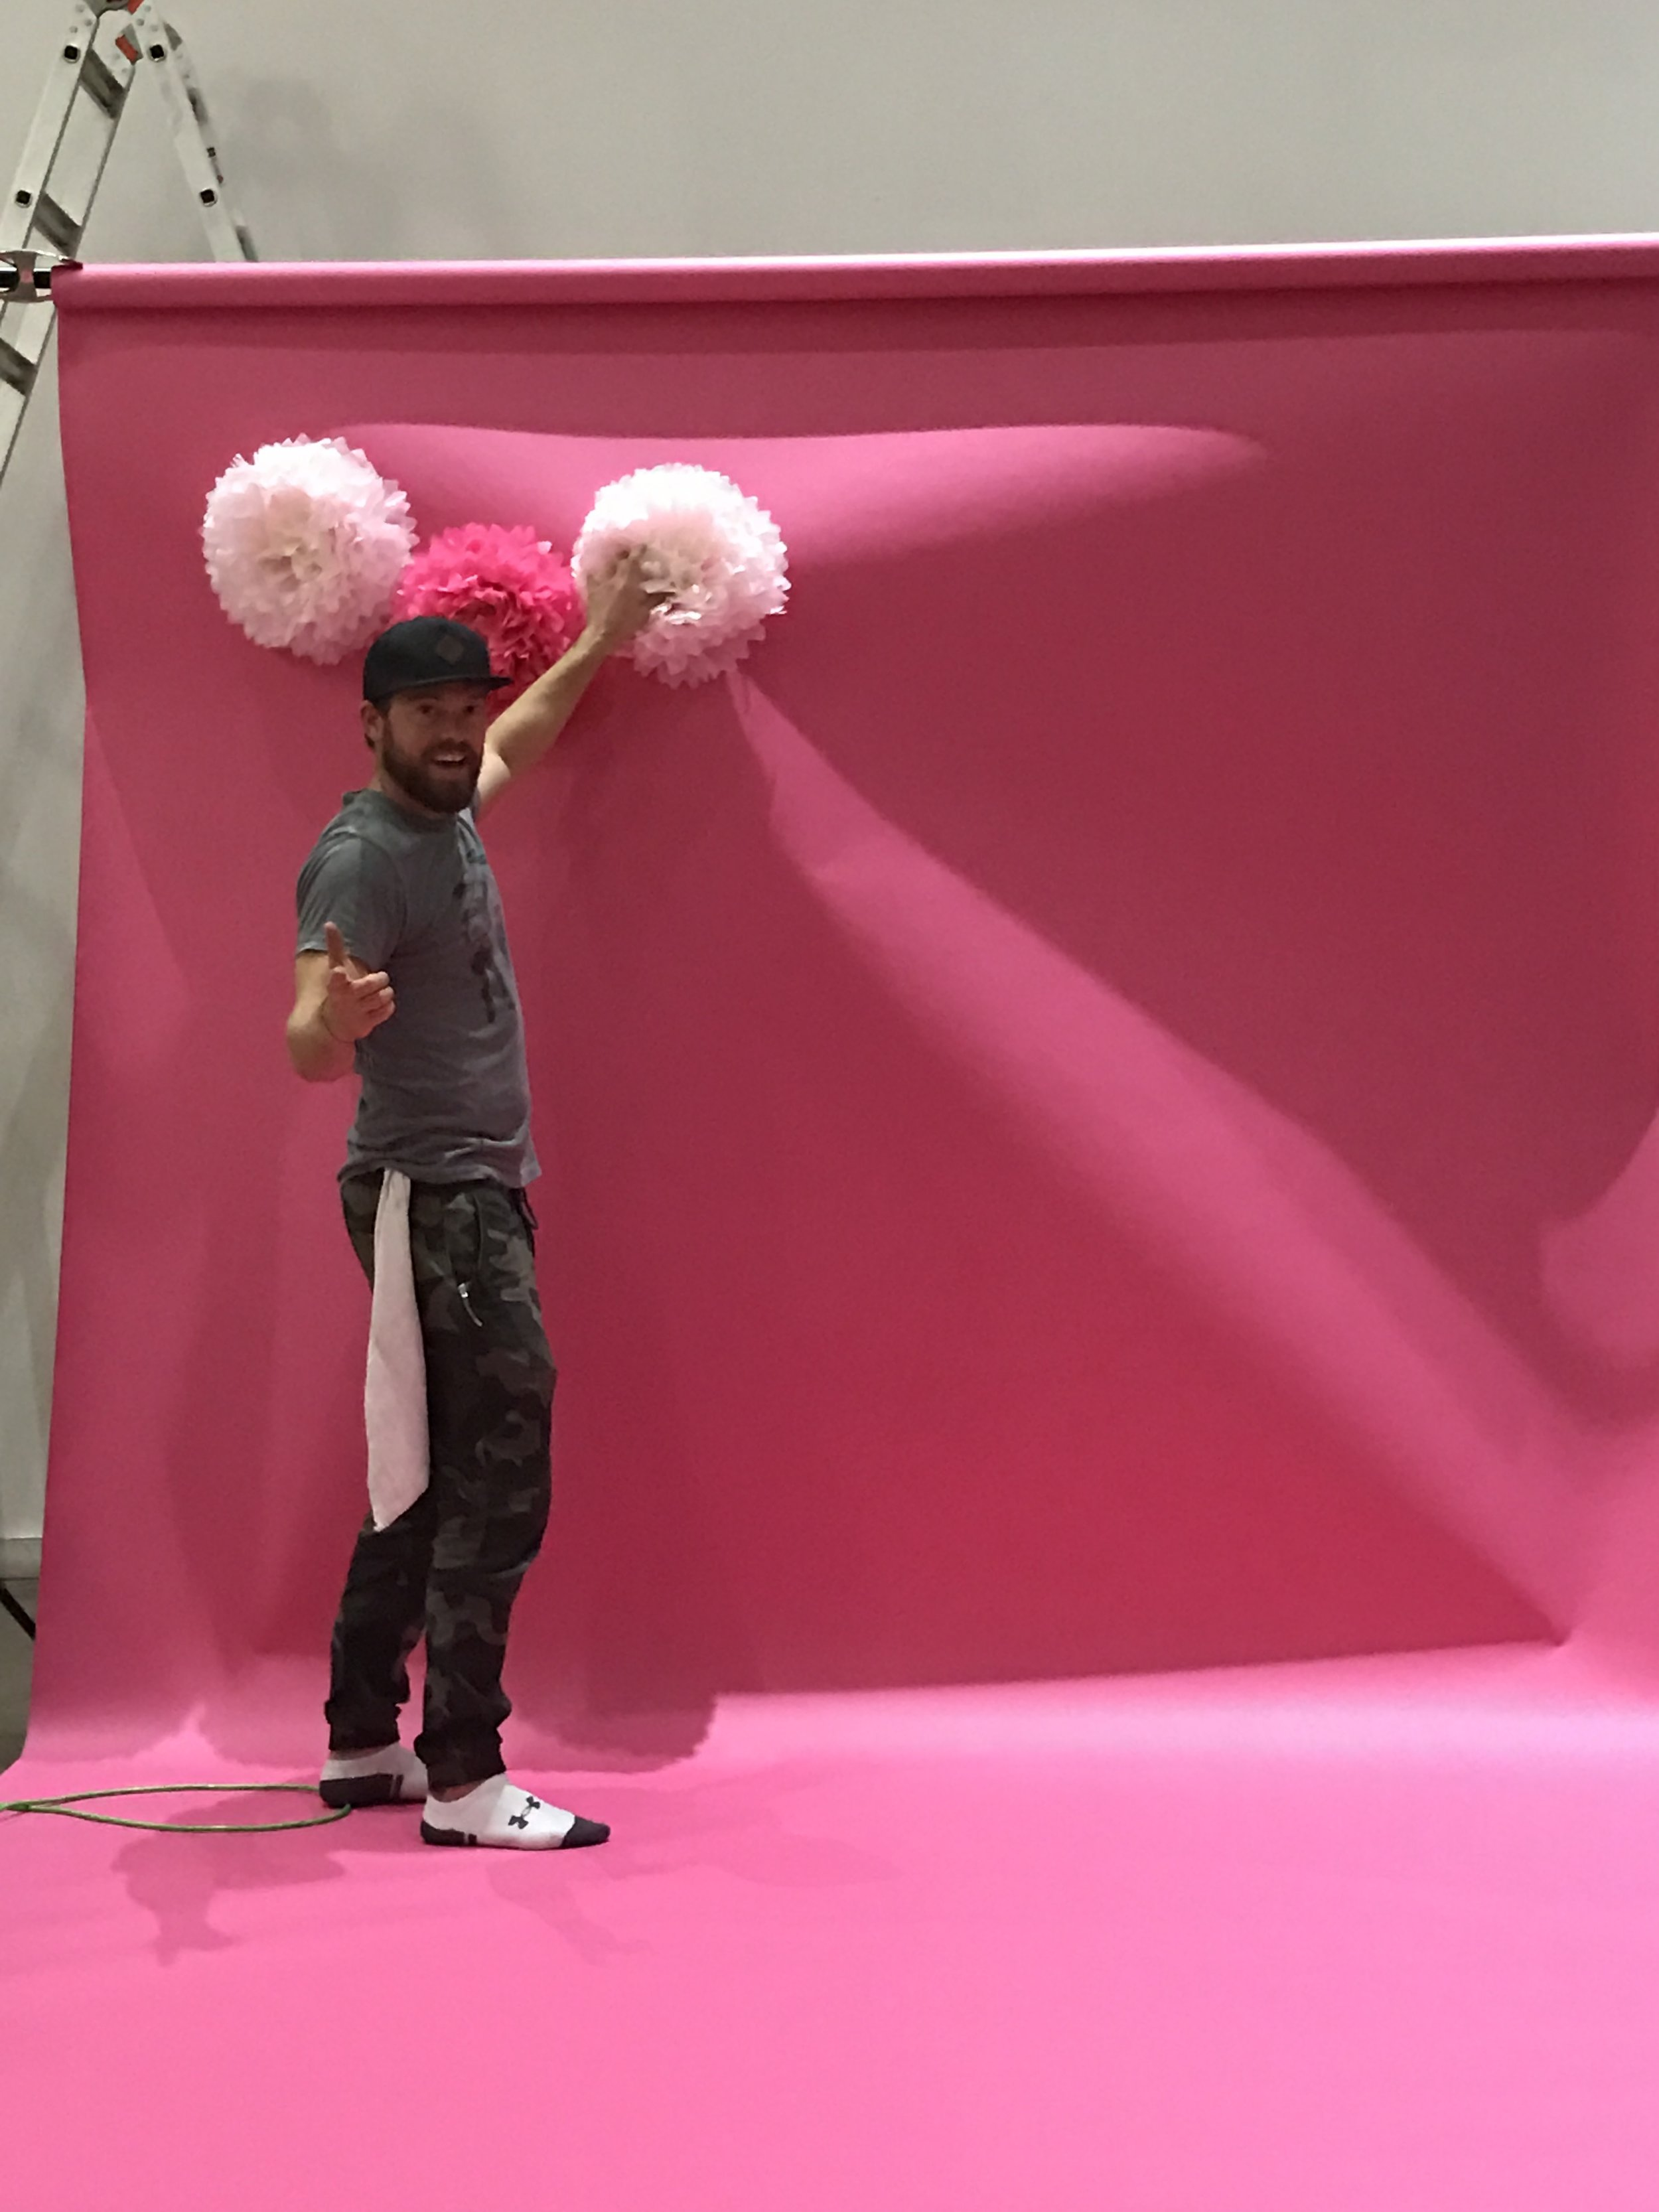 Mickey, our Prop Master. Pink looks good on you dude.